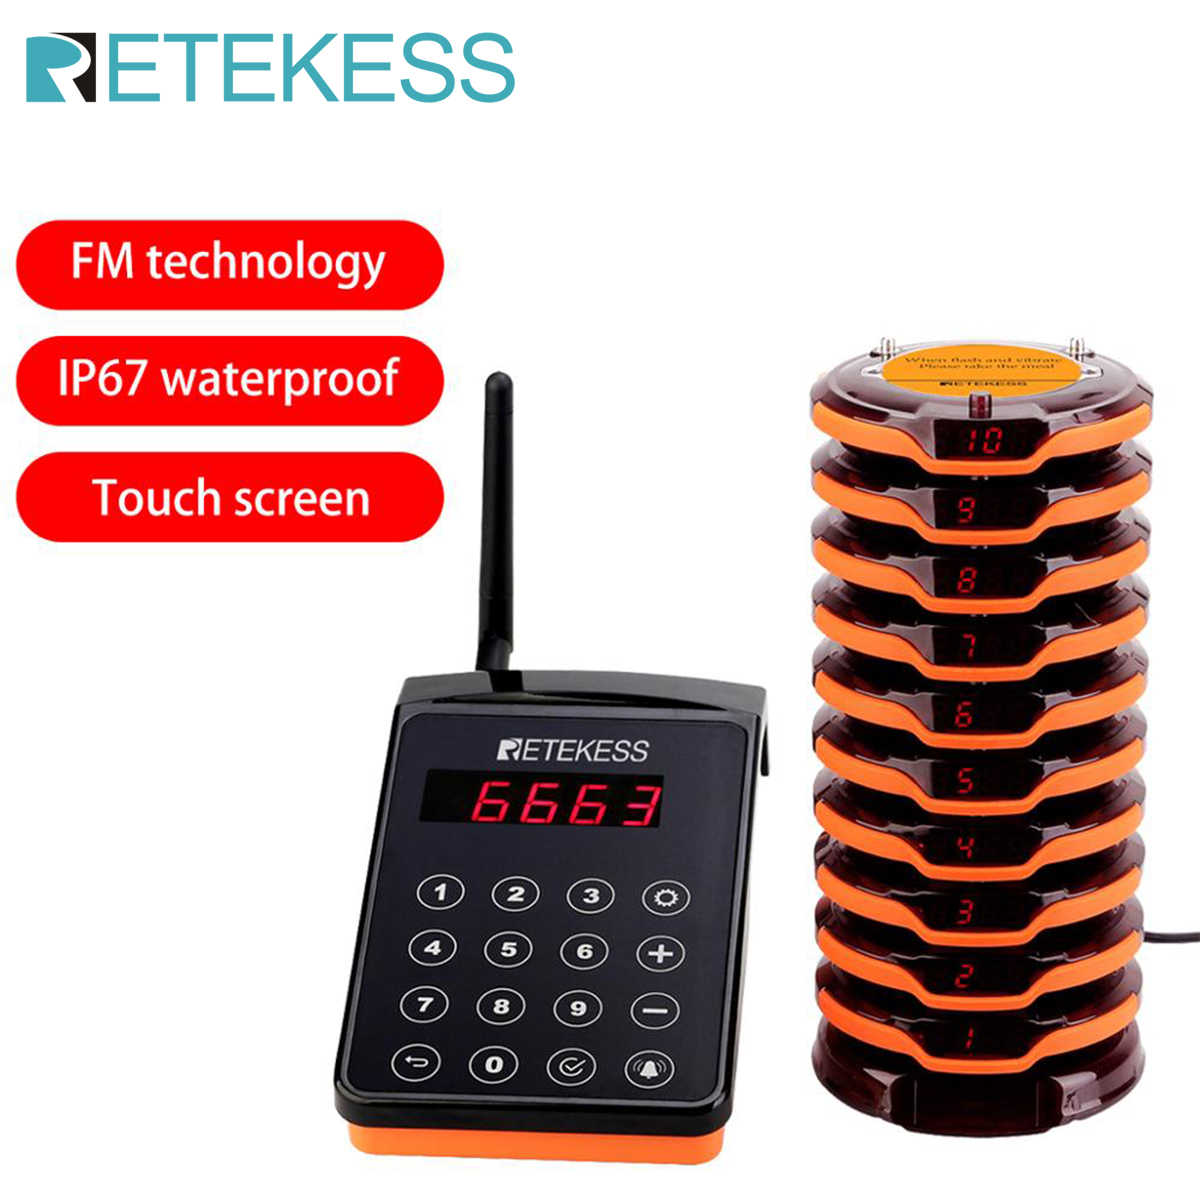 Retekess TD156 Wireless Paging Queue System waiter calling system 10 Coaster Pagers wireless beeper buzzer system for Restaurant